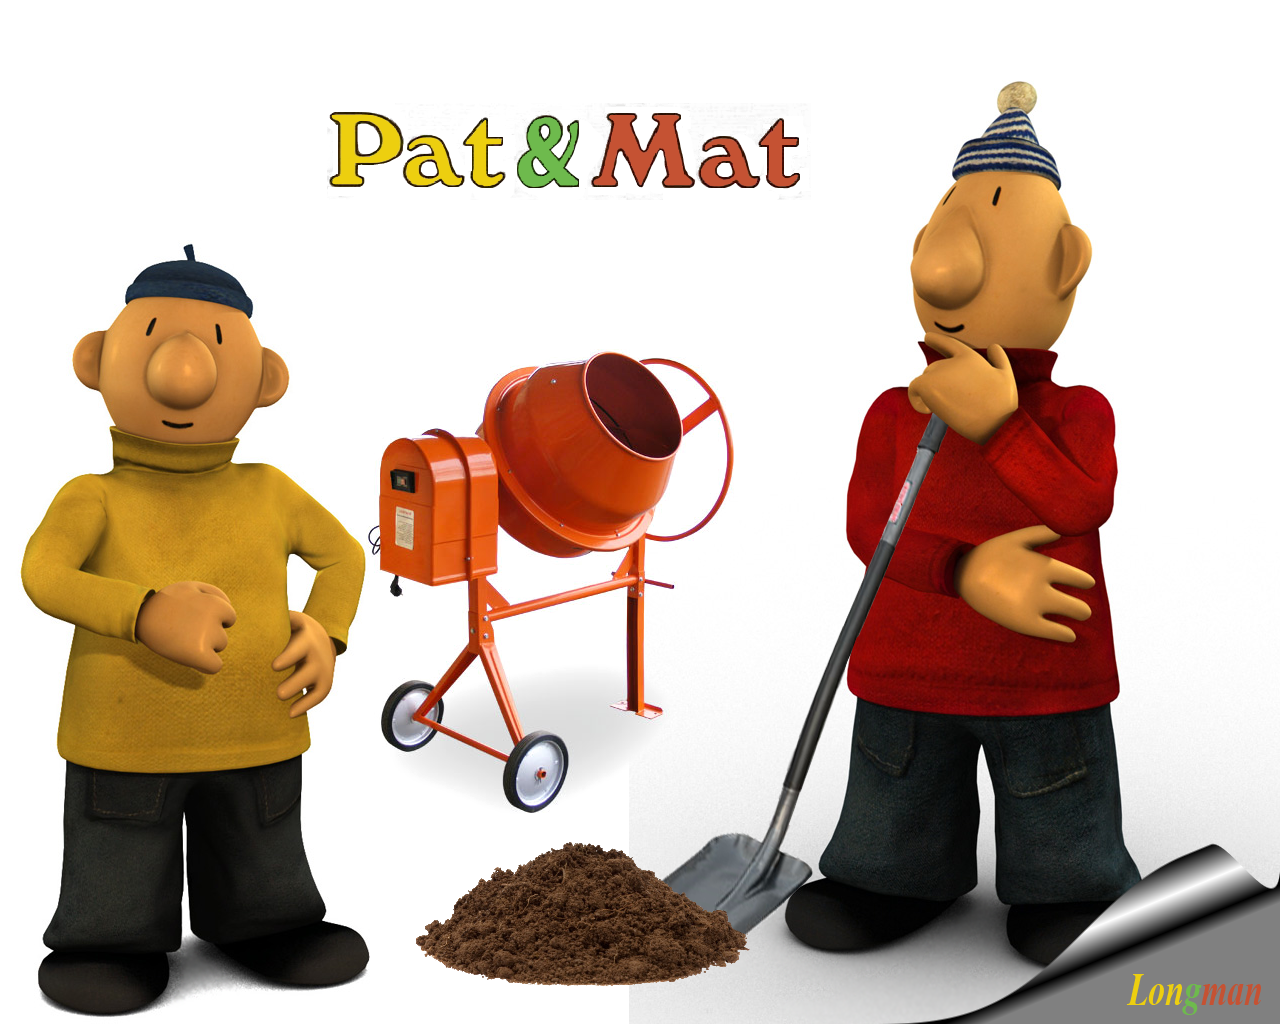 pat and mat images mat and pat HD wallpaper and background photos - Mat PNG HD